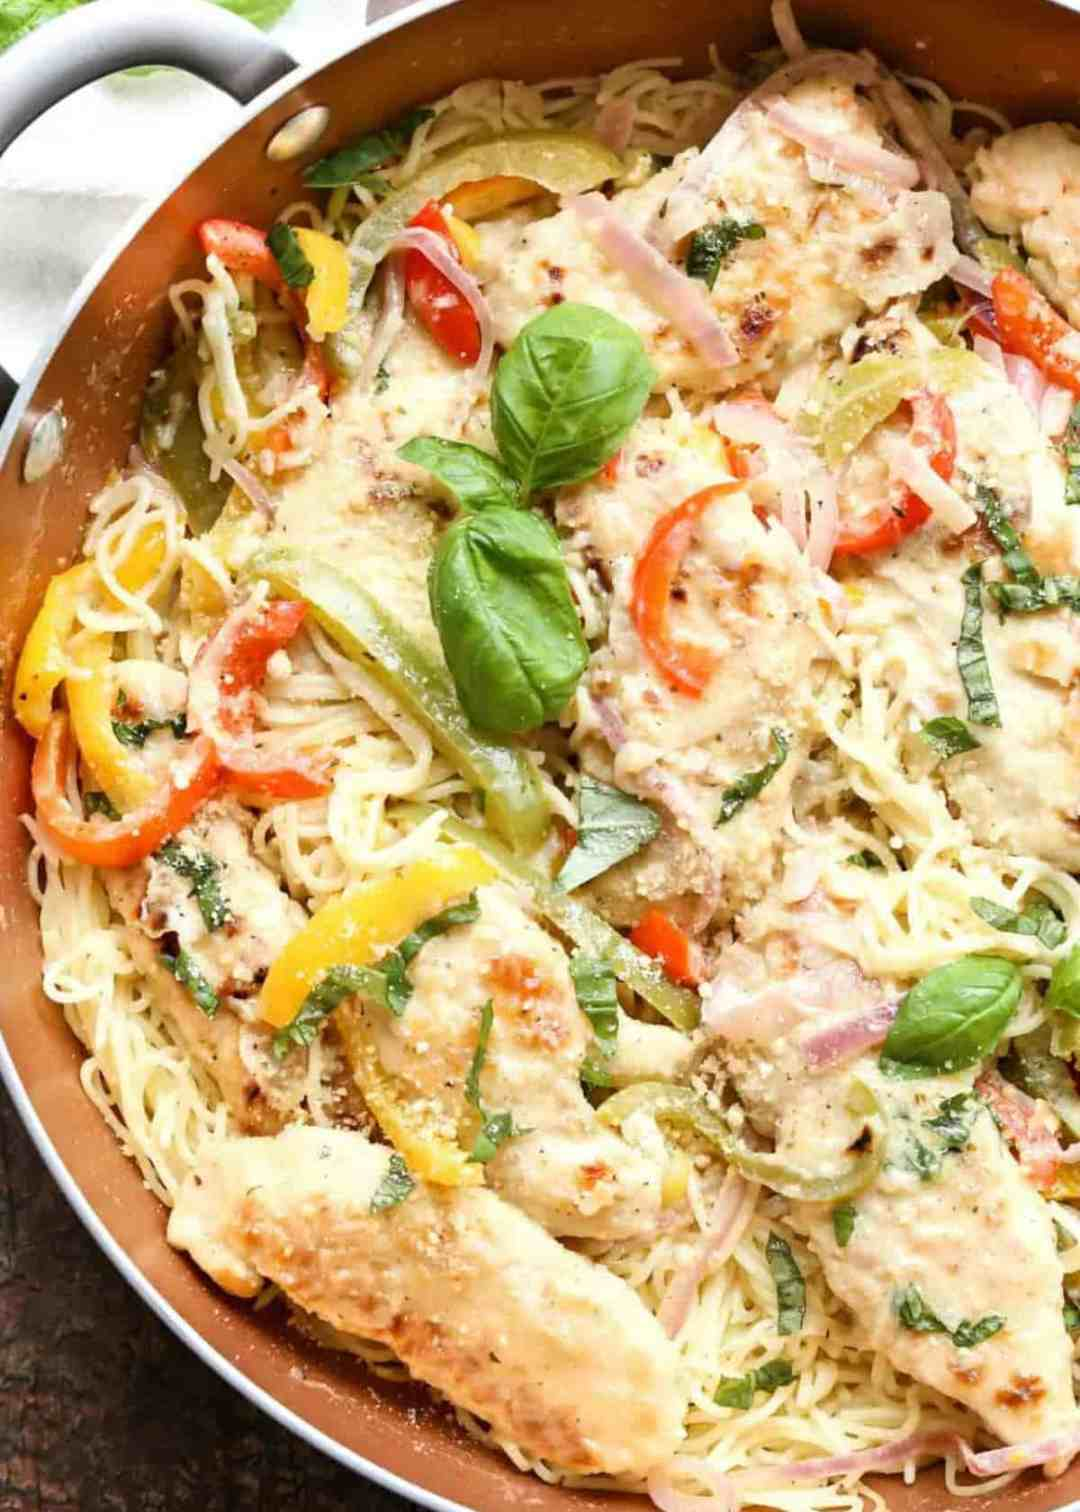 Chicken scampi recipe, sprinkled with parmesan cheese, in skillet.